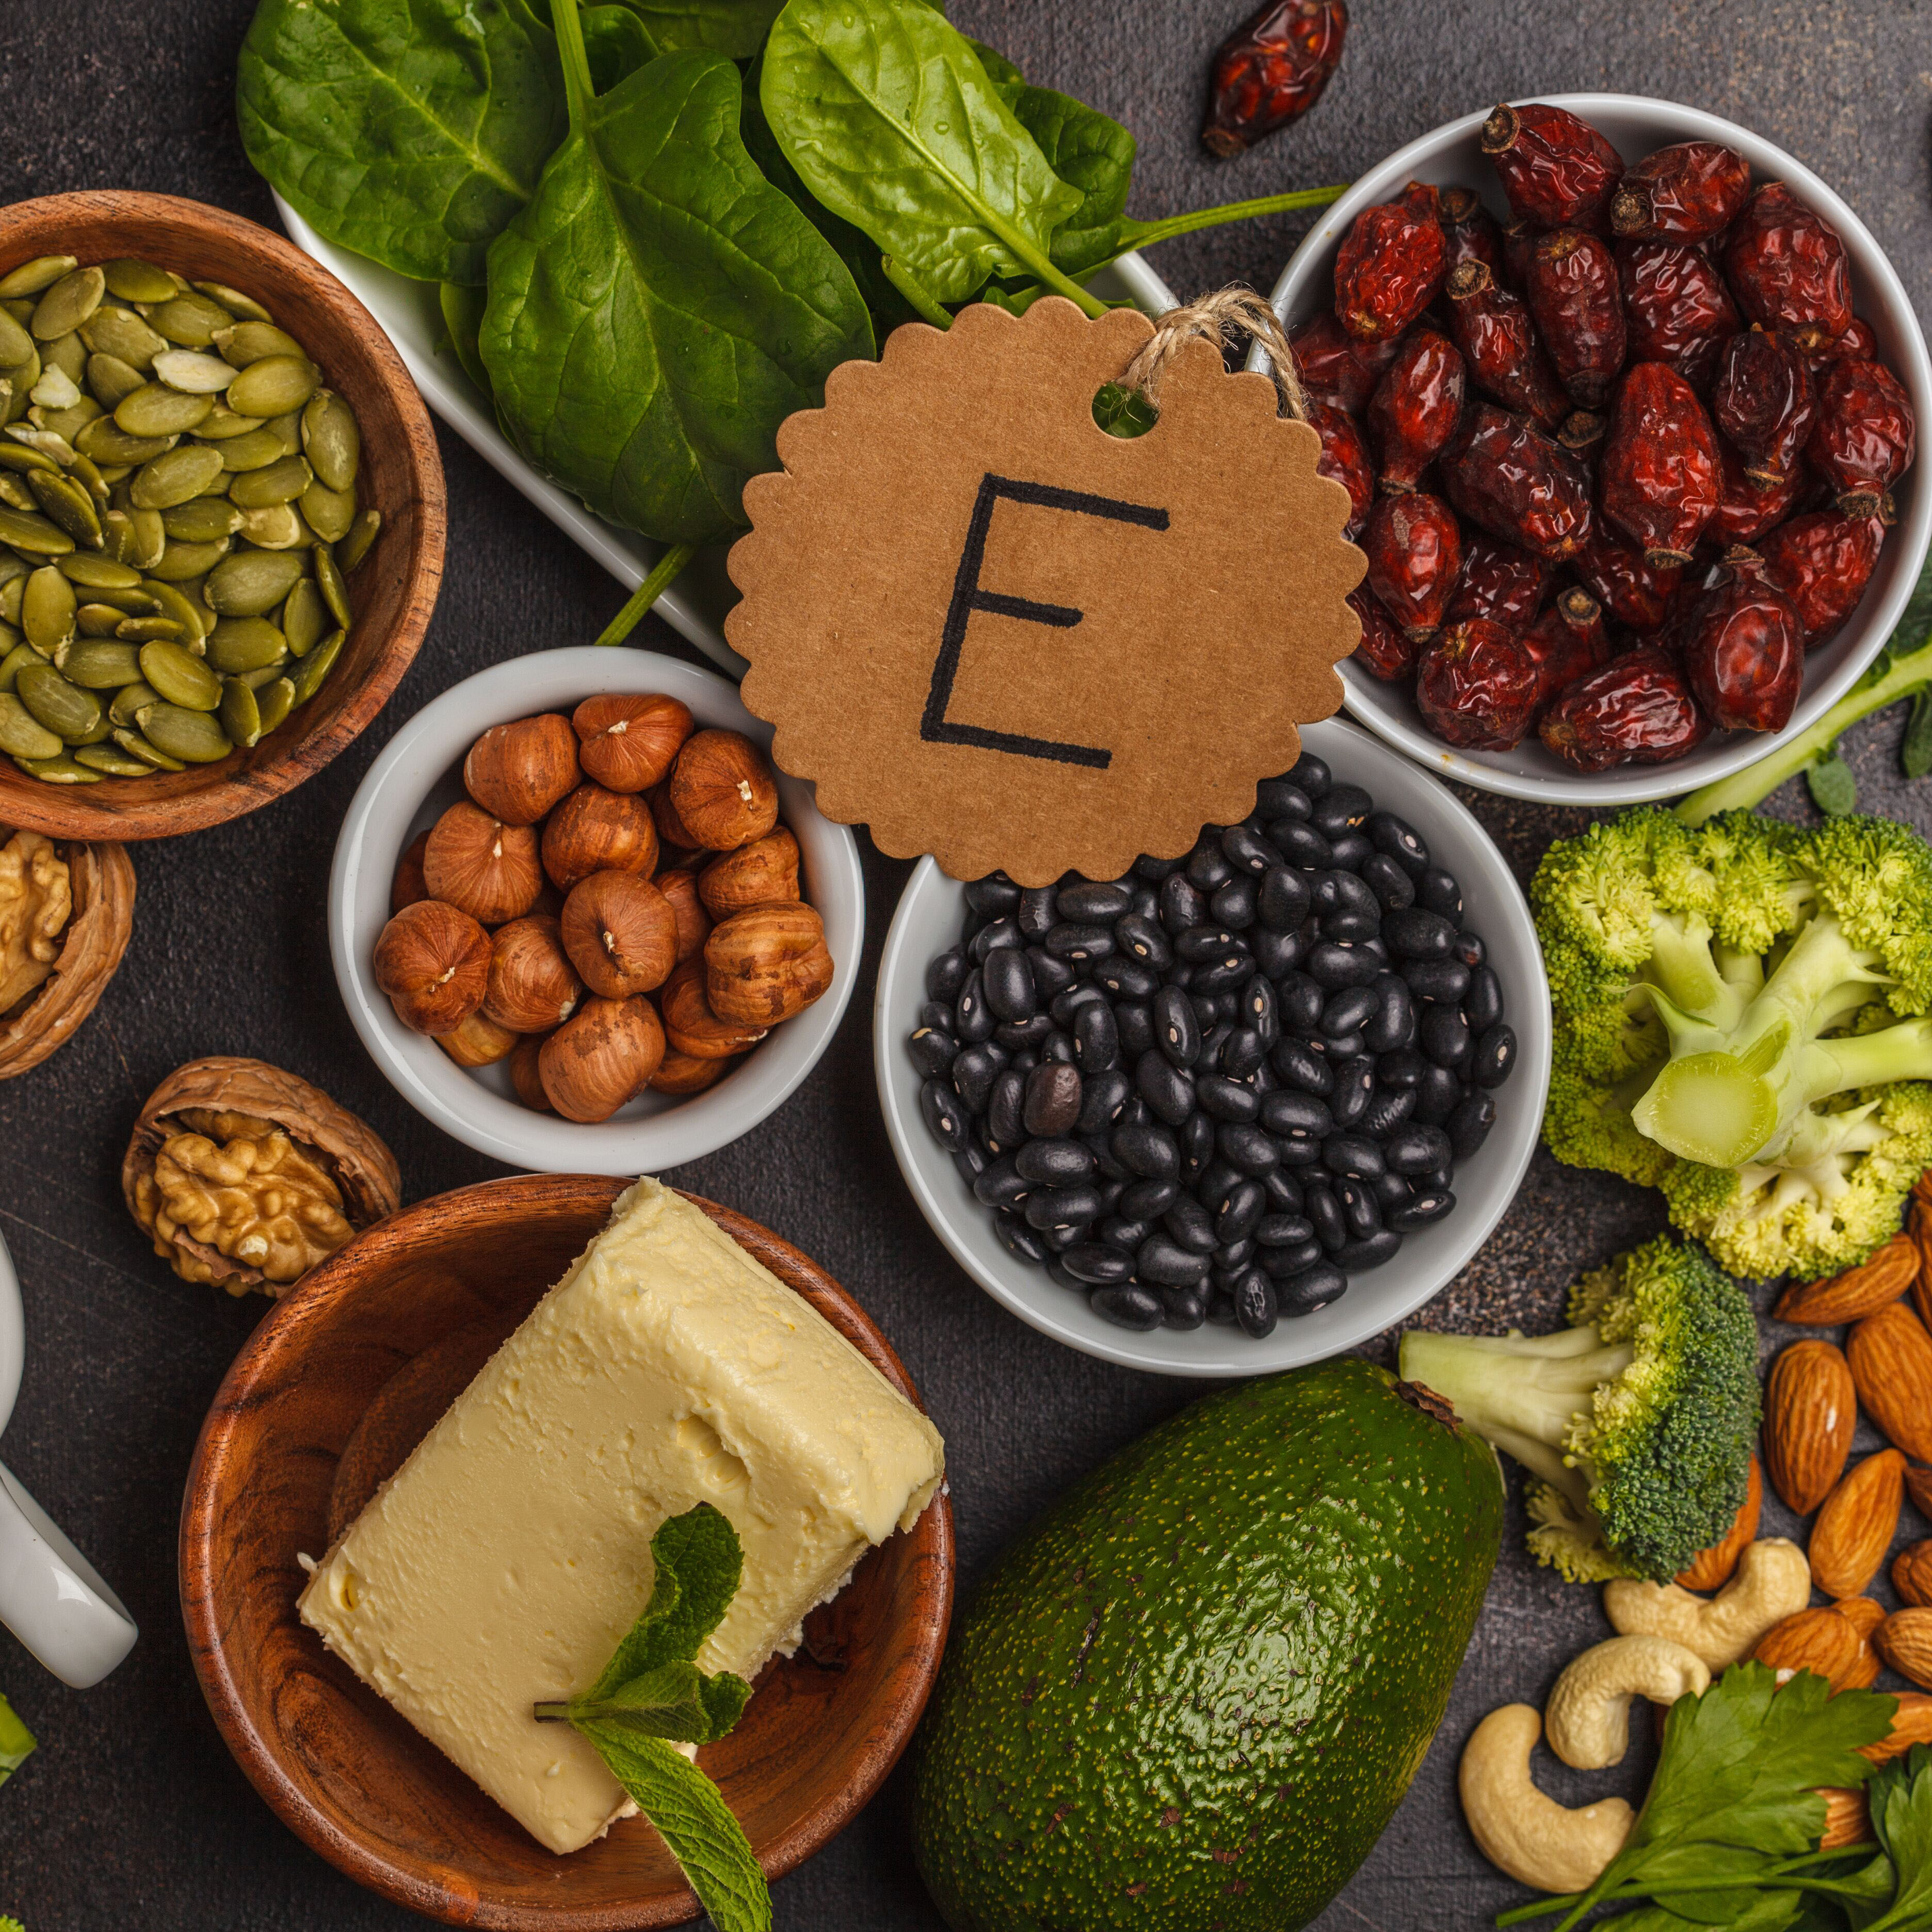 Time to adjust vitamin E dietary guidelines? Study evaluates fat  consumption and absorption rates